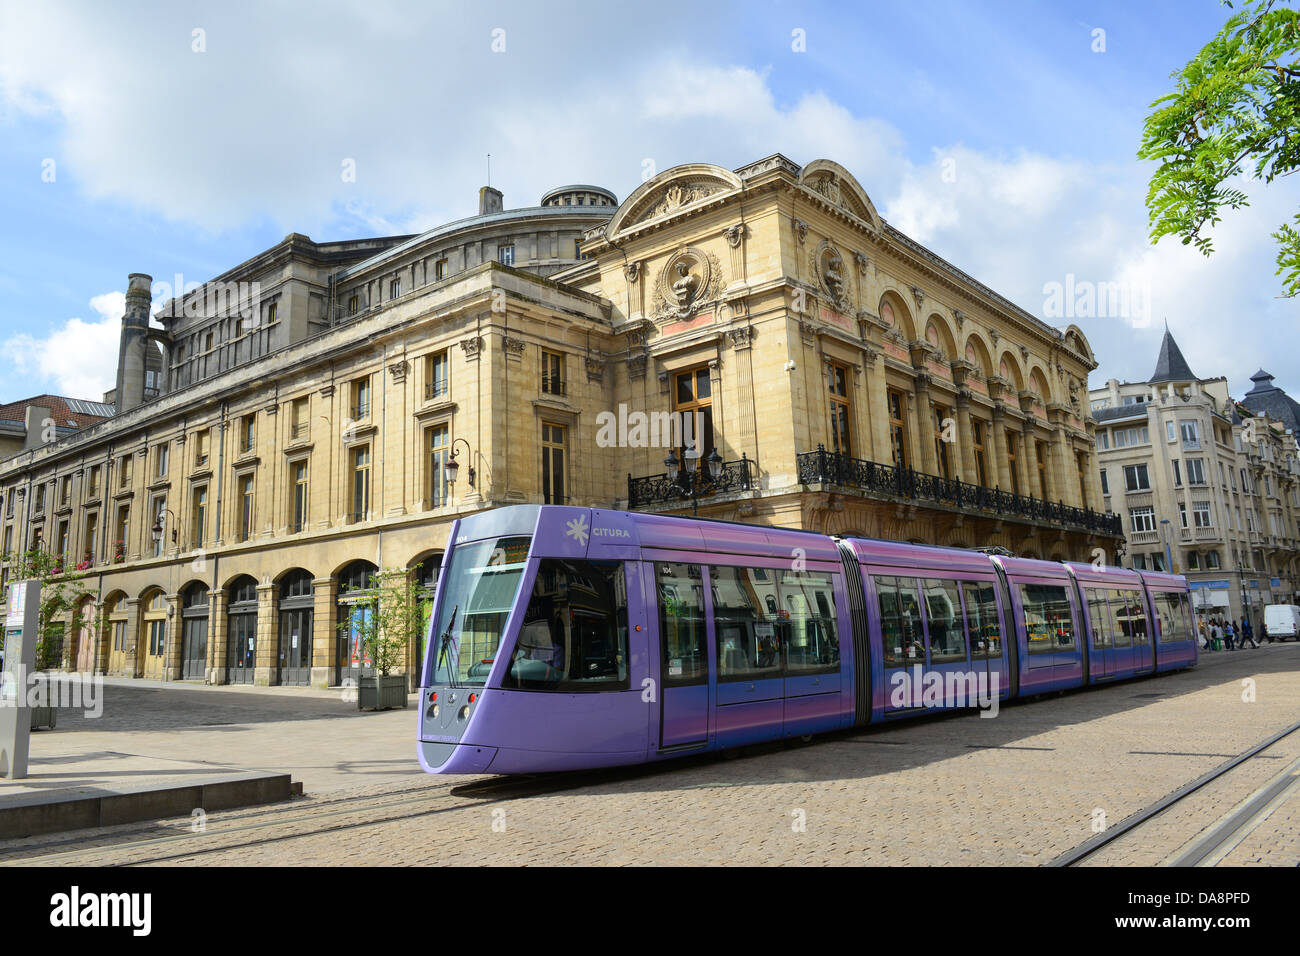 reims france tram at grand theatre de reims stock photo royalty free image 57970961 alamy. Black Bedroom Furniture Sets. Home Design Ideas